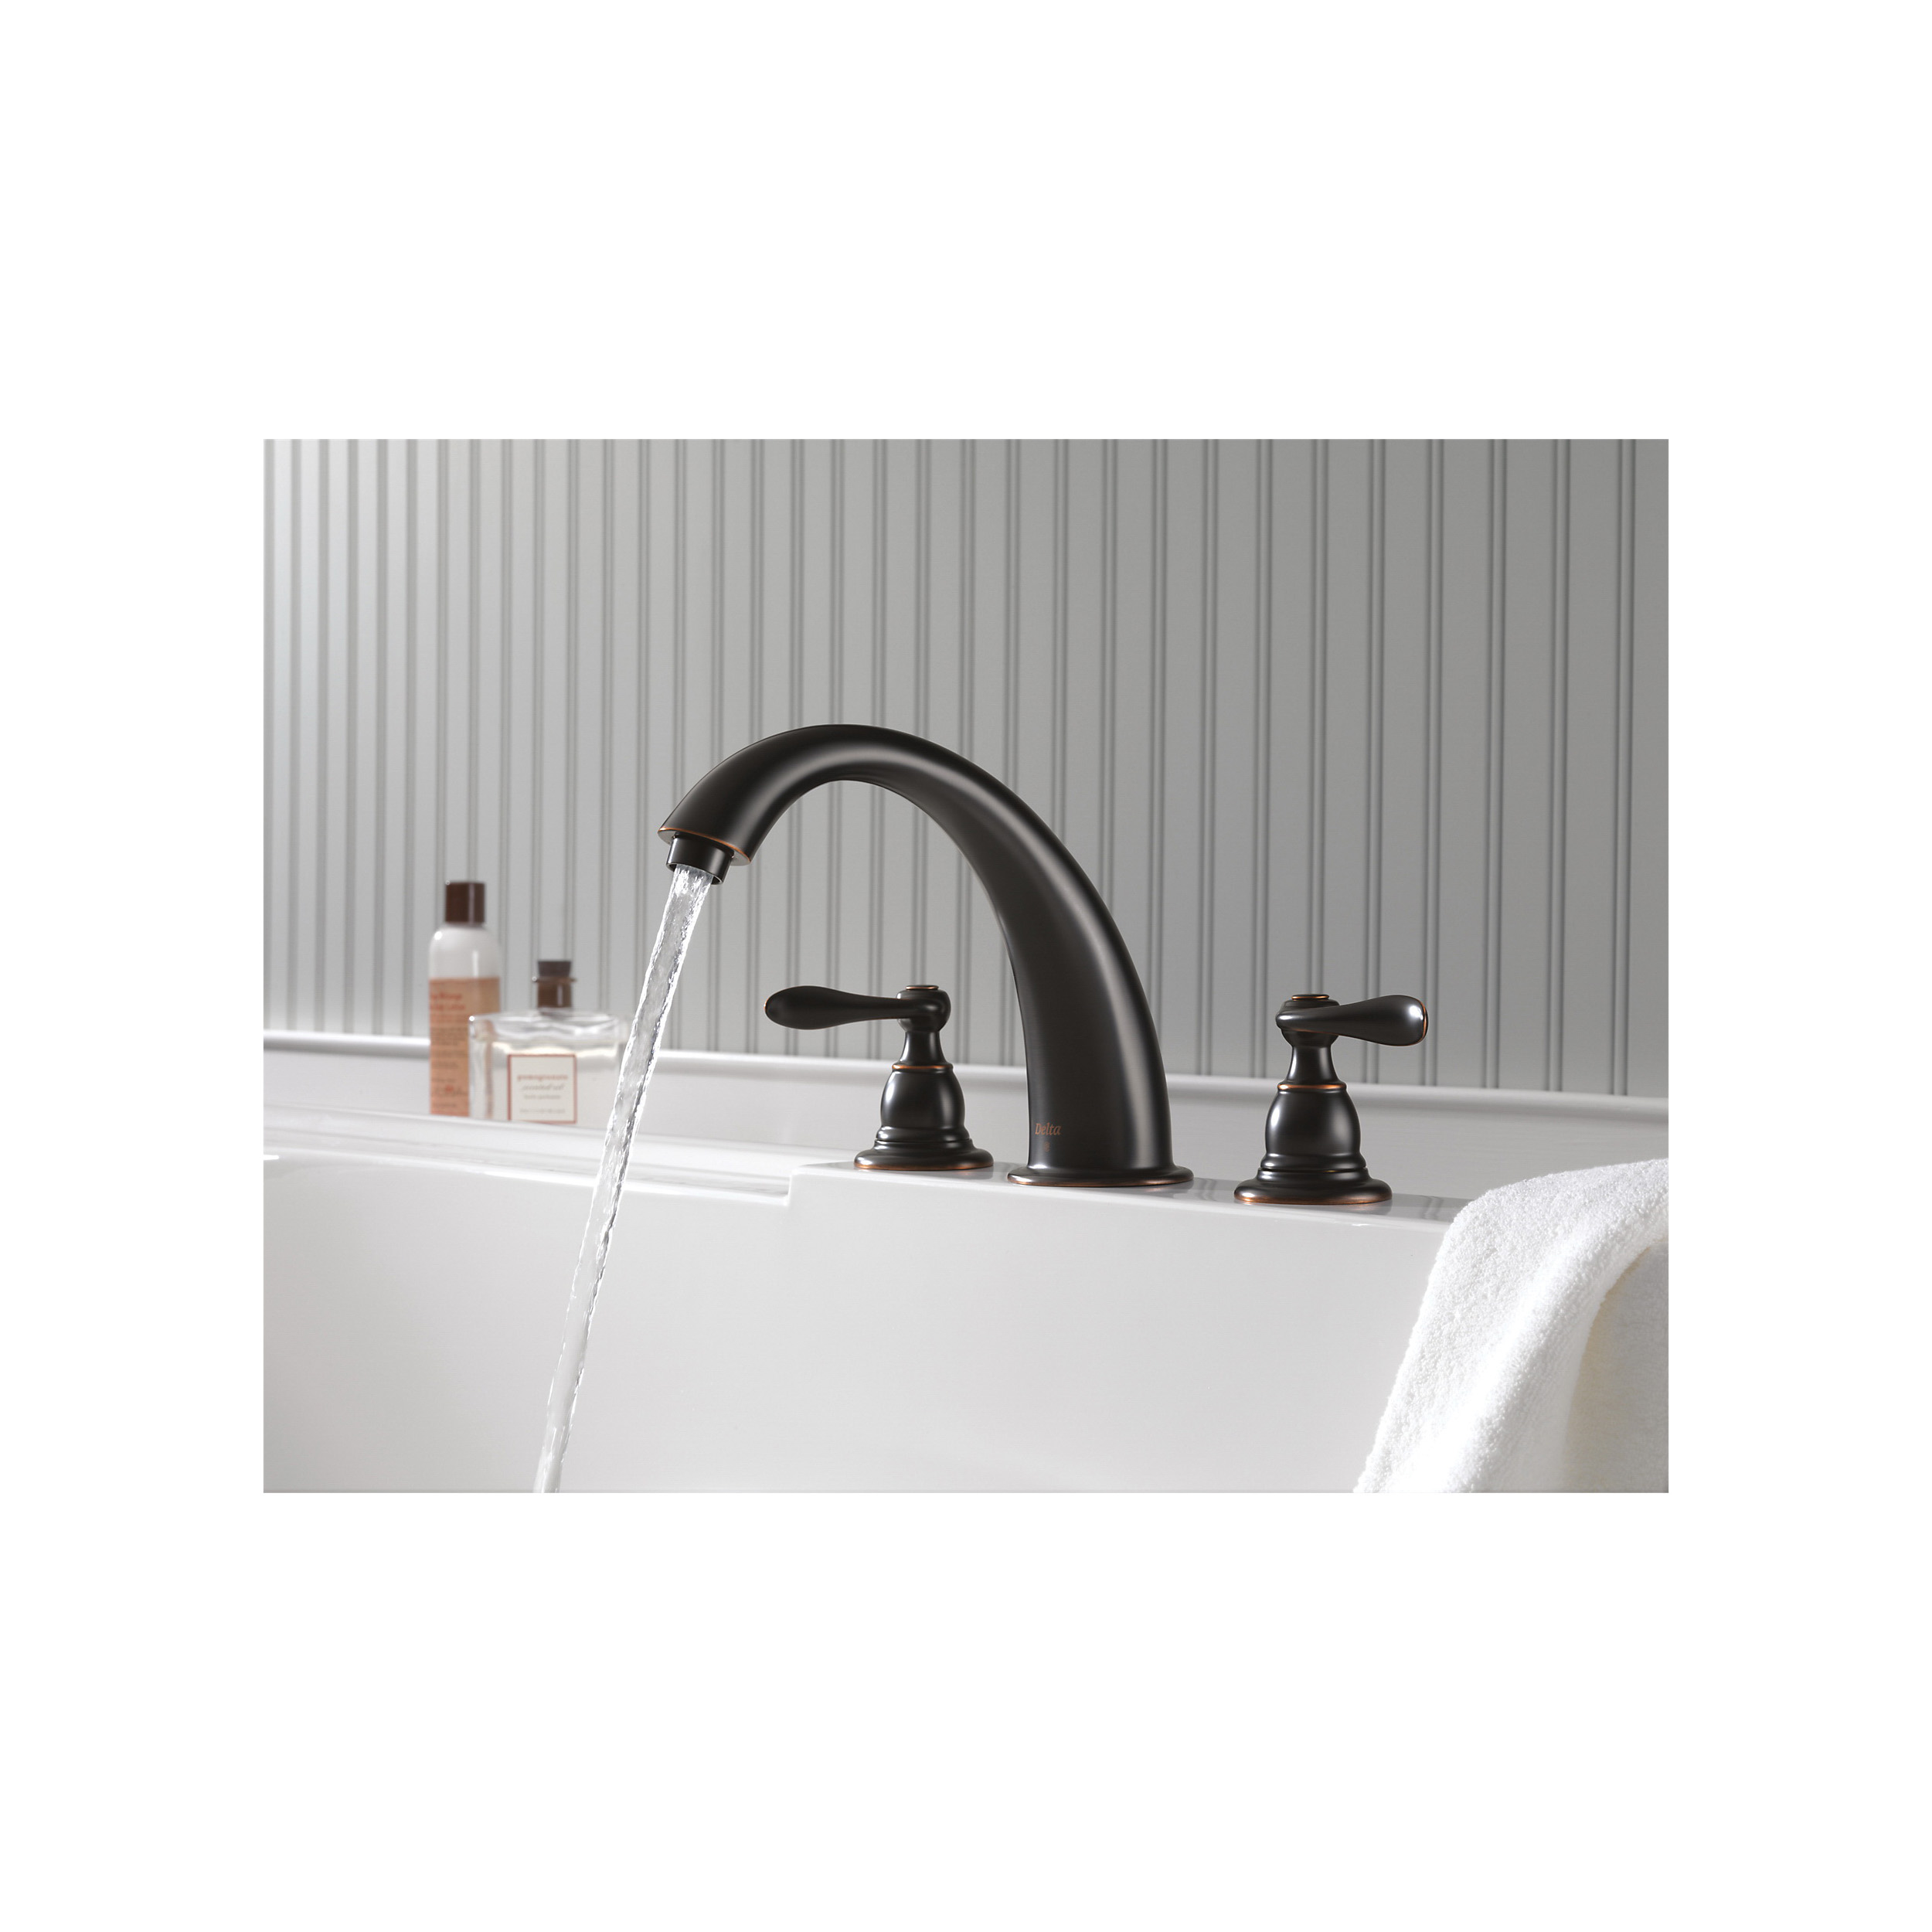 DELTA® BT2796-OB Roman Tub Trim, Windemere®, 18 gpm, 8 to 16 in Center, Oil Rubbed Bronze, 2 Handles, Function: Traditional, Hand Shower Yes/No: No, Import